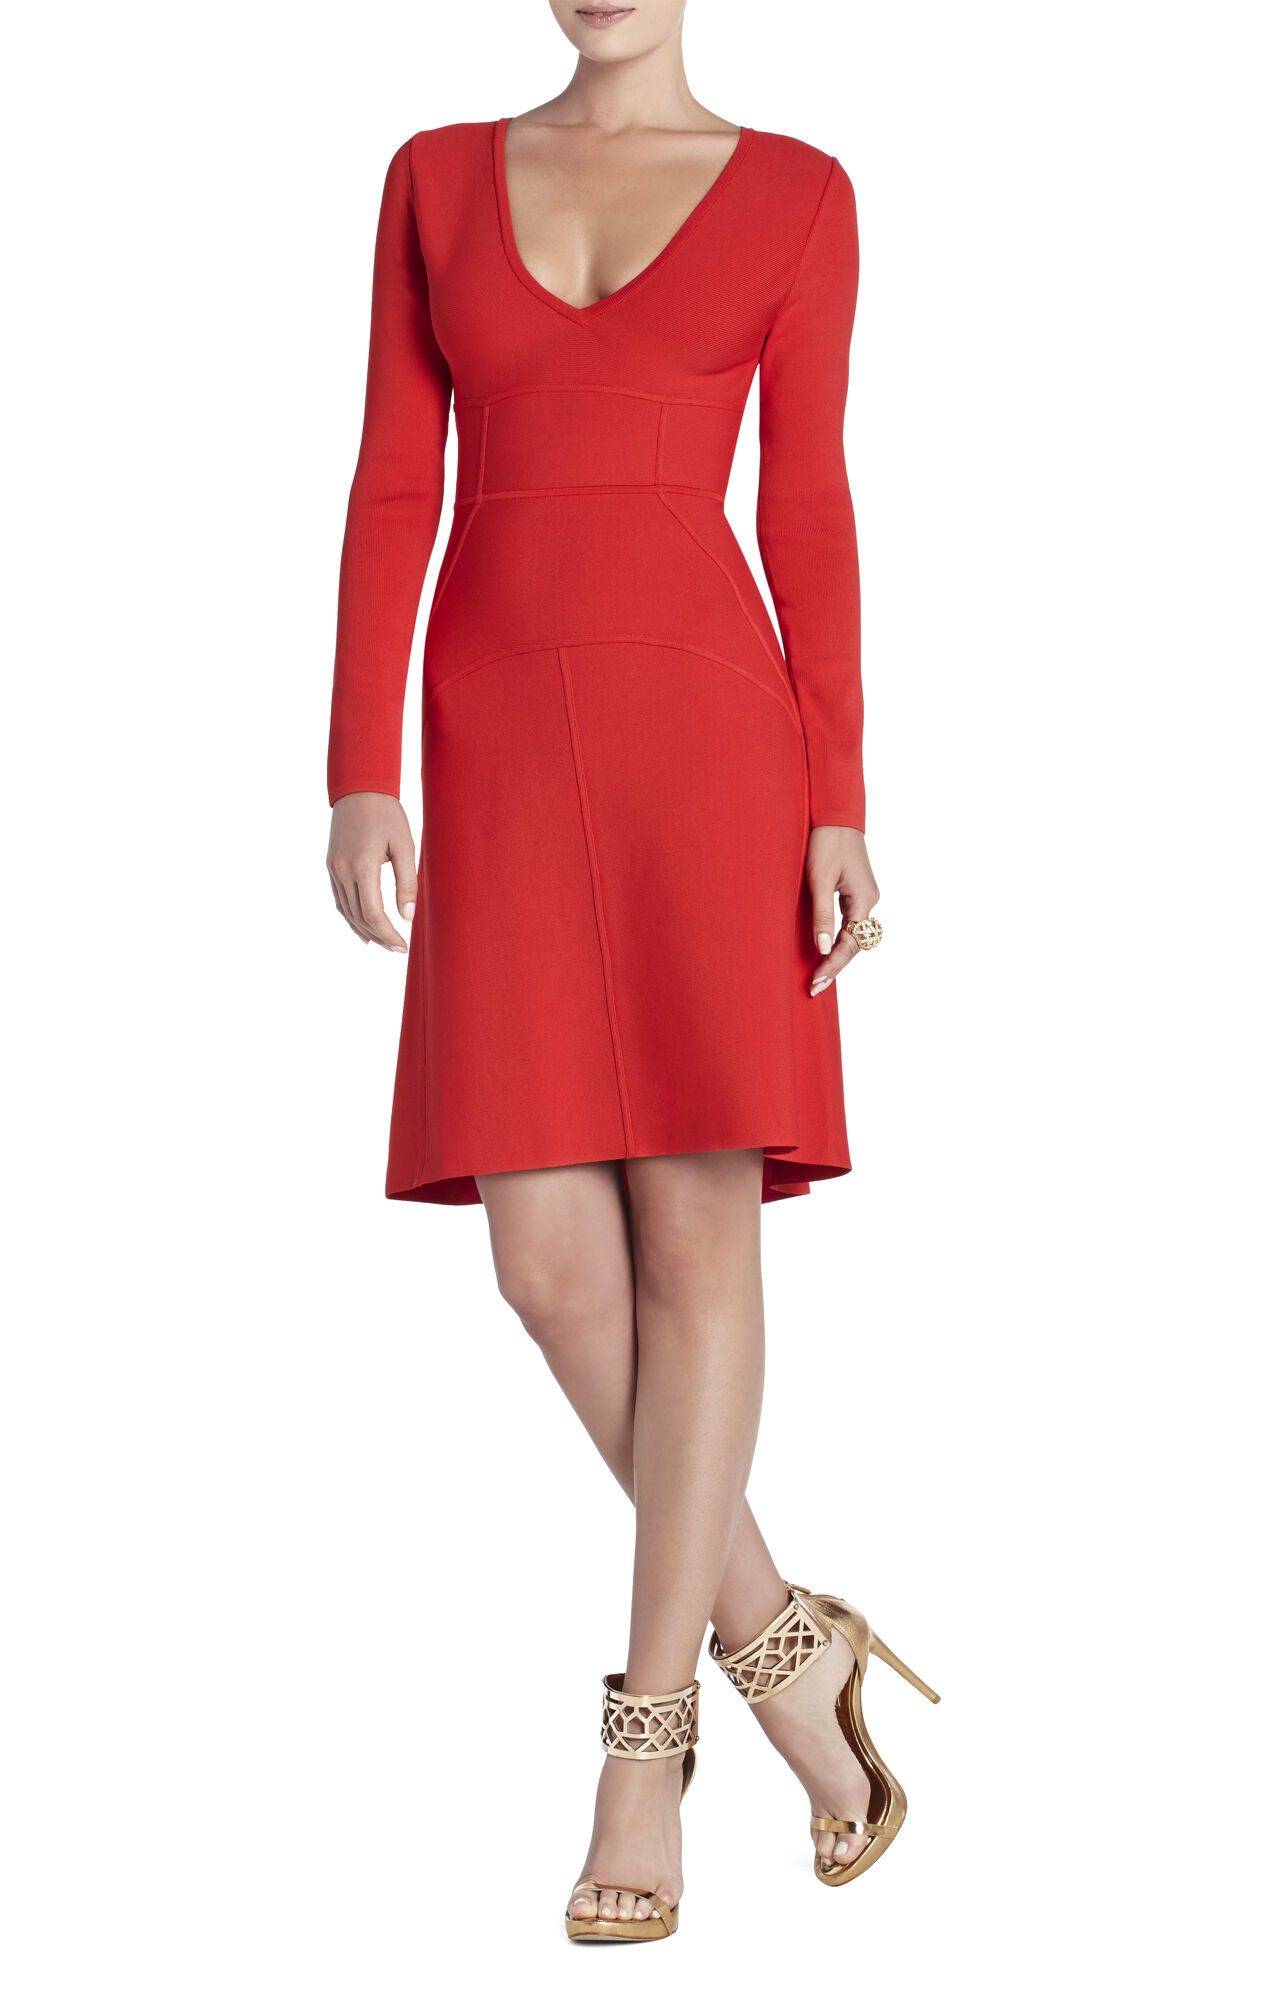 Sydney Long-Sleeve V-Neck Dress